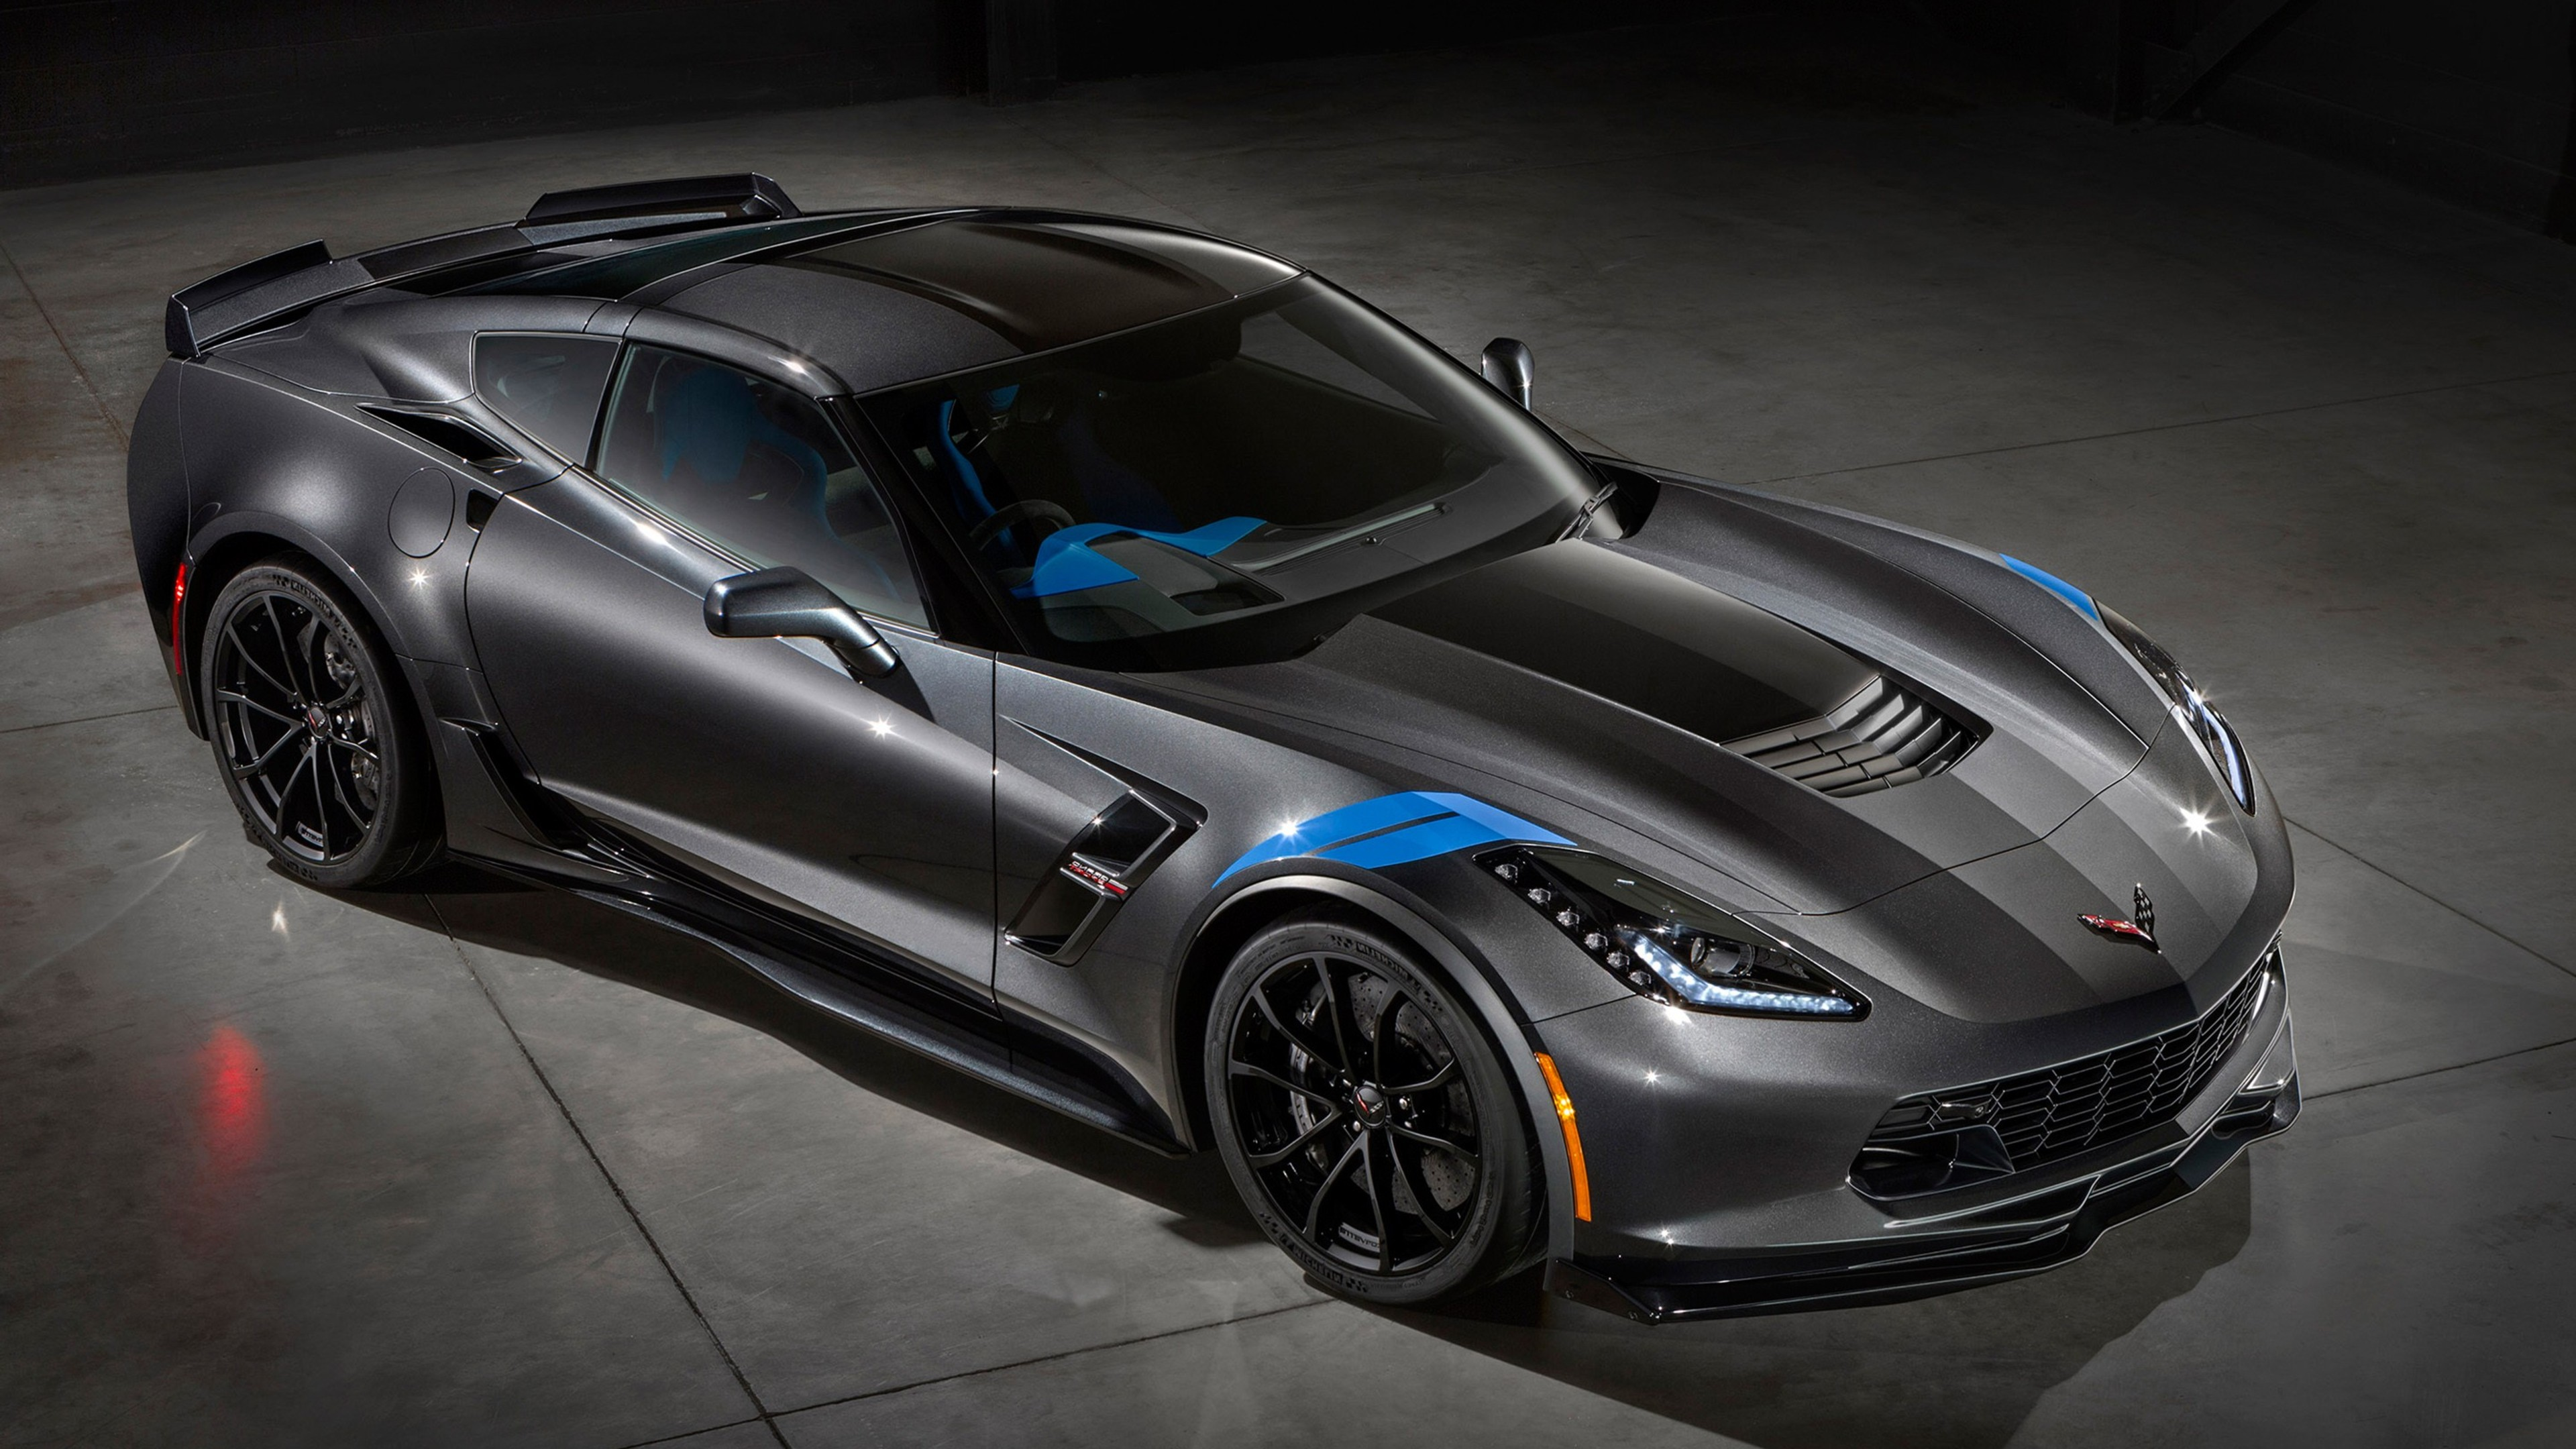 Chevrolet Corvette Grand Sport Hd Cars 4k Wallpapers